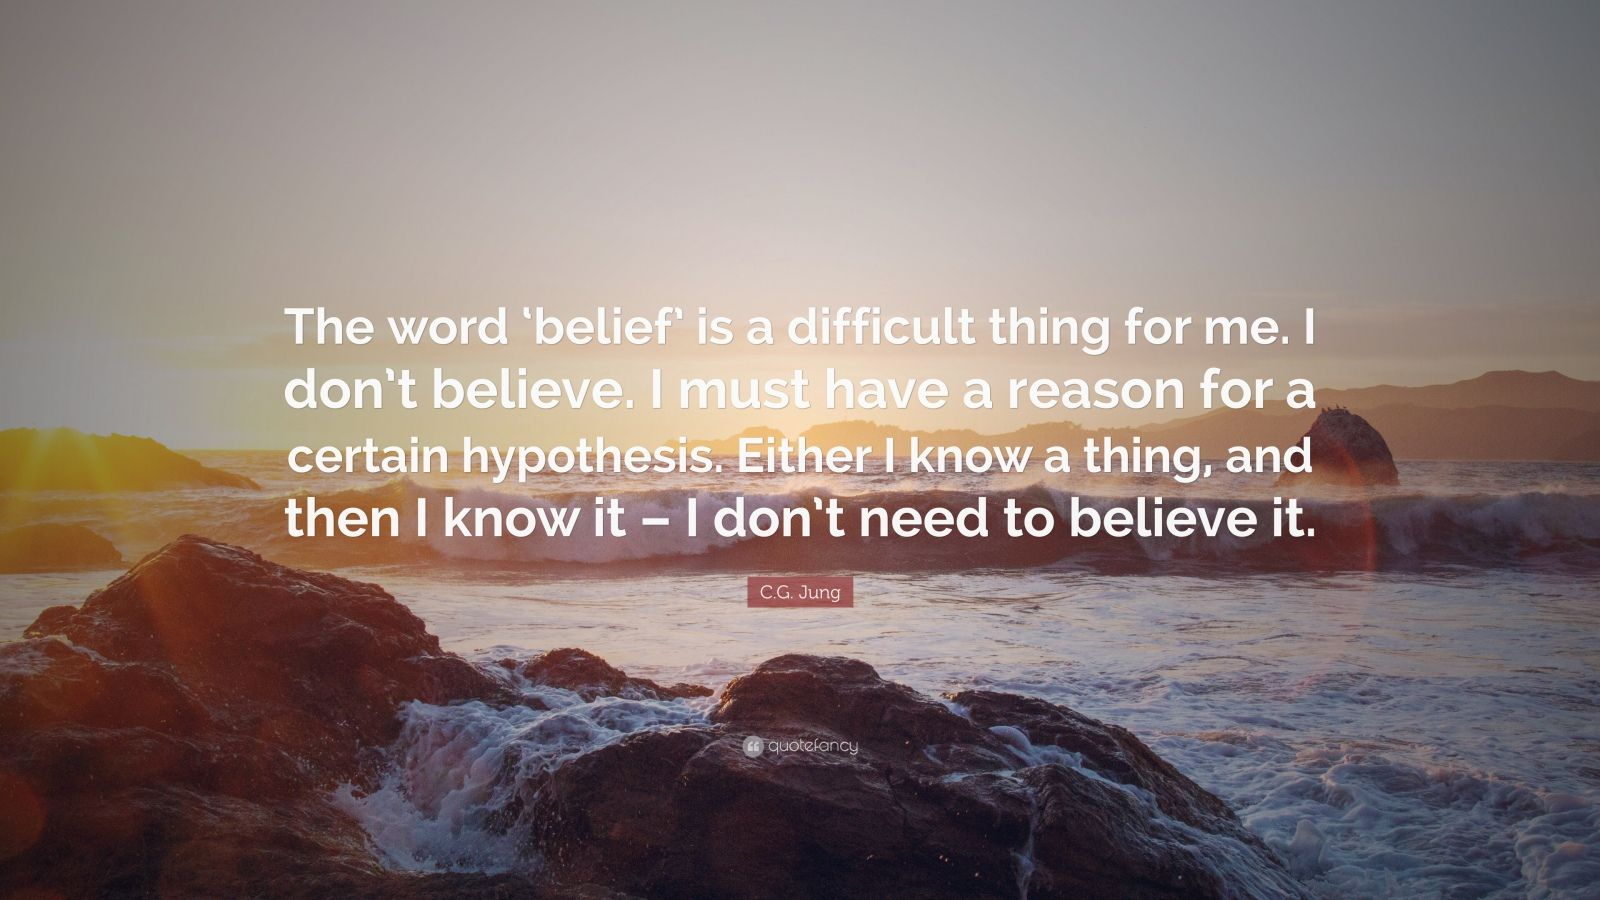 """C.G. Jung Quote: """"The word 'belief' is a difficult thing for me. I don't believe. I must have a reason for a certain hypothesis. Either I know a thing, and then I know it – I don't need to believe it."""""""